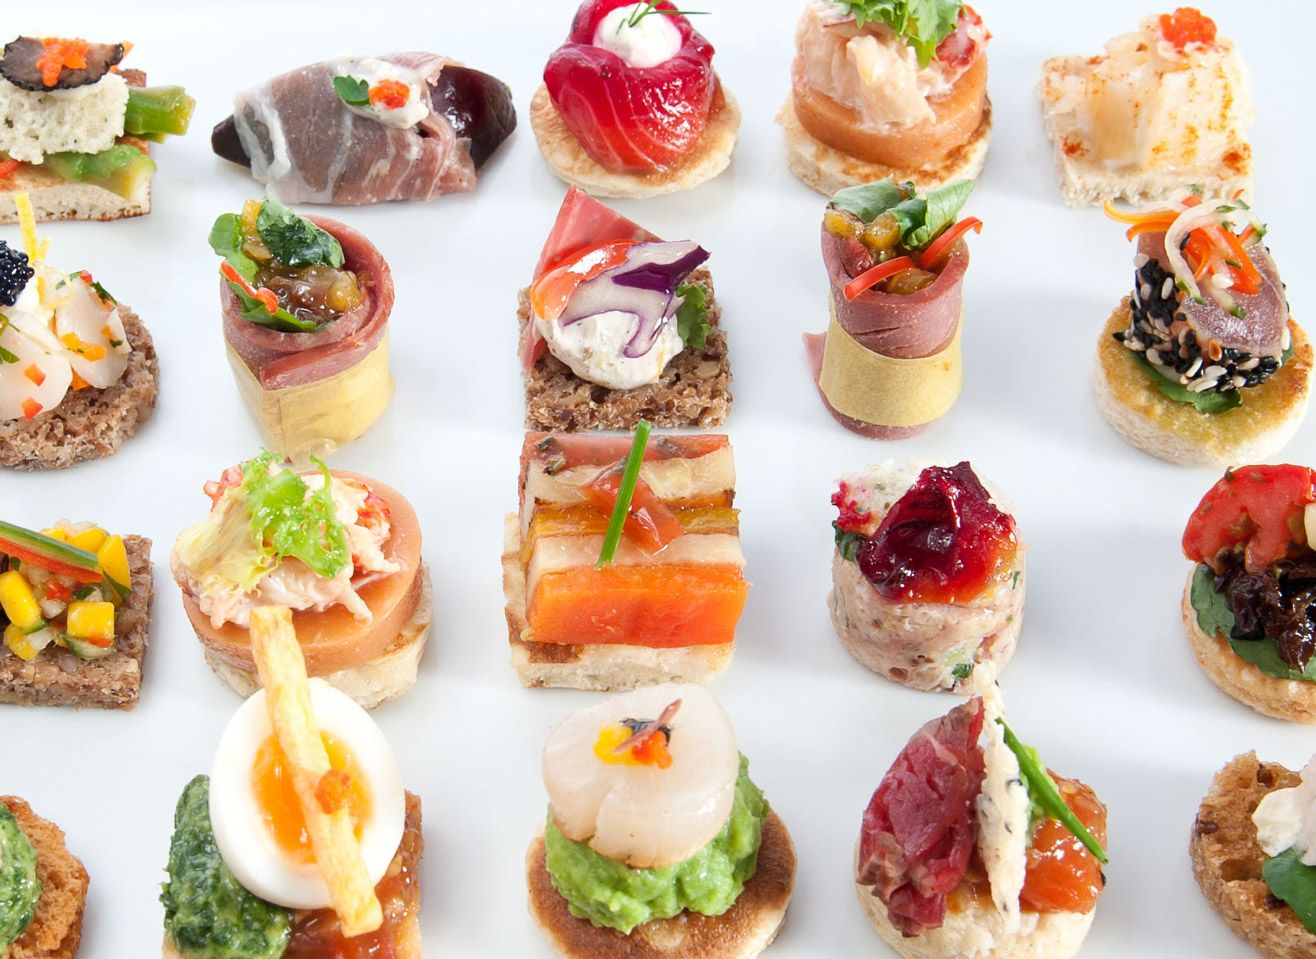 Our canap s canap world catering london canap s main for Canape catering